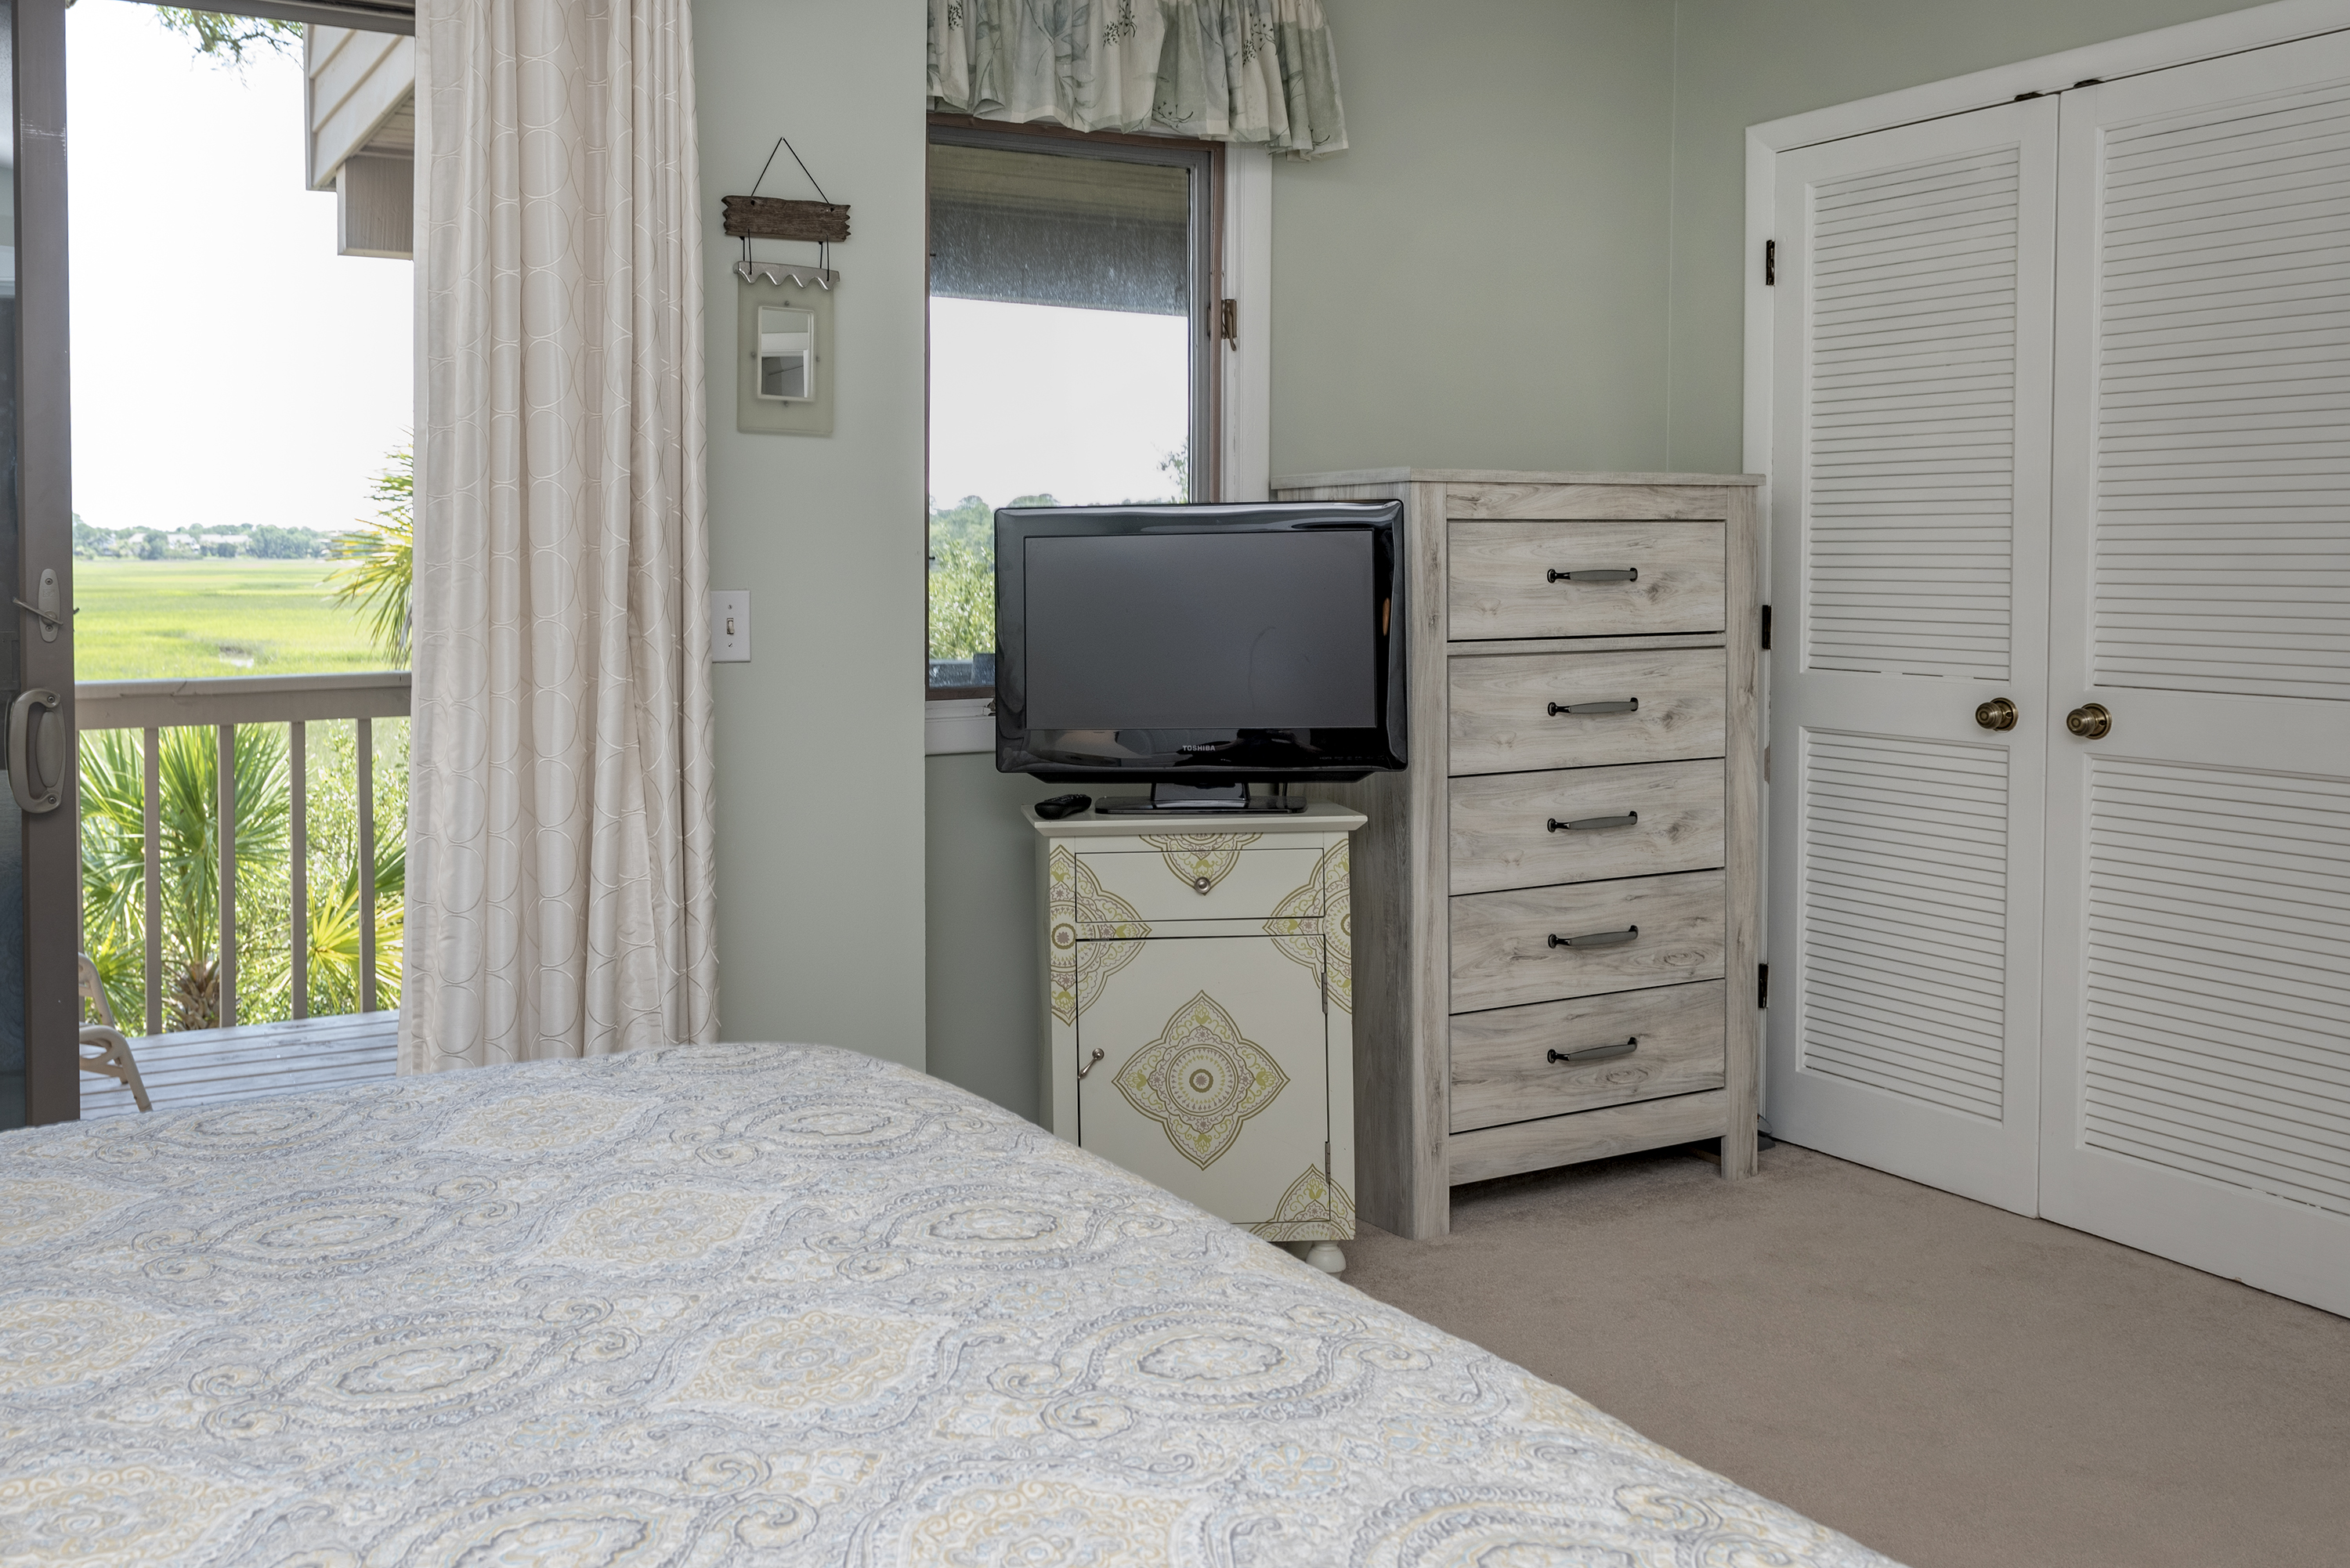 Master bedroom also has a TV, two large closets, and plenty of drawer space. We also have extra linens, pillows and blankets.